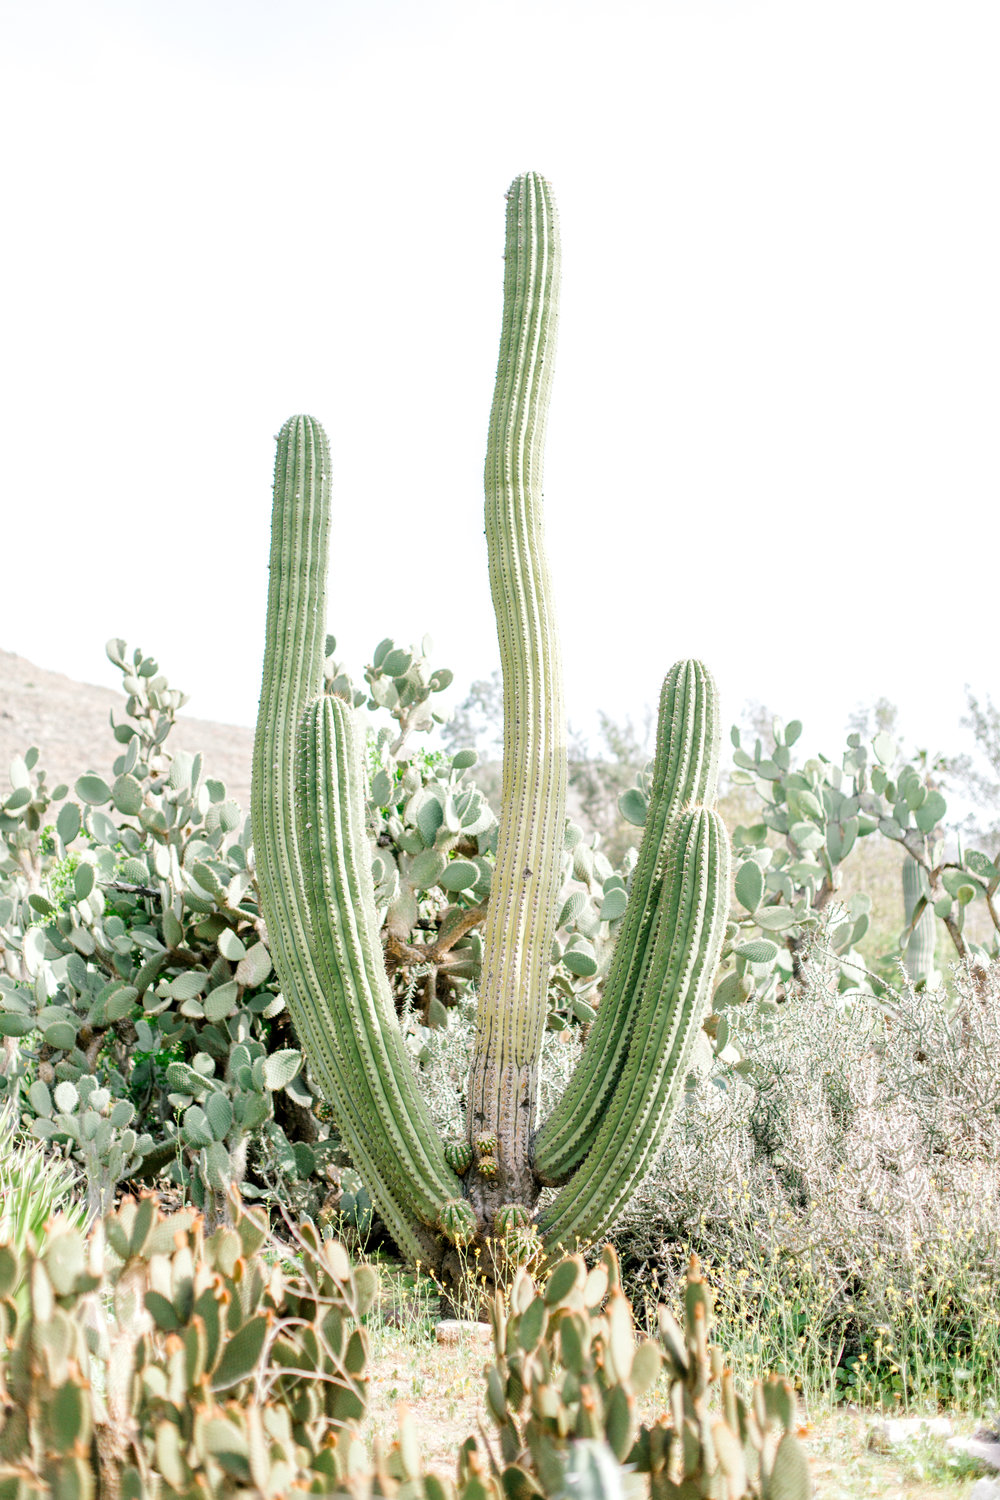 Jessica Sgubin Photography Atlanta Portrait photographer los angeles la salvation mountain greenhouse cactus garden moorten botanical garden cabazon dinosaurs santa monica joshua tree-11.jpg